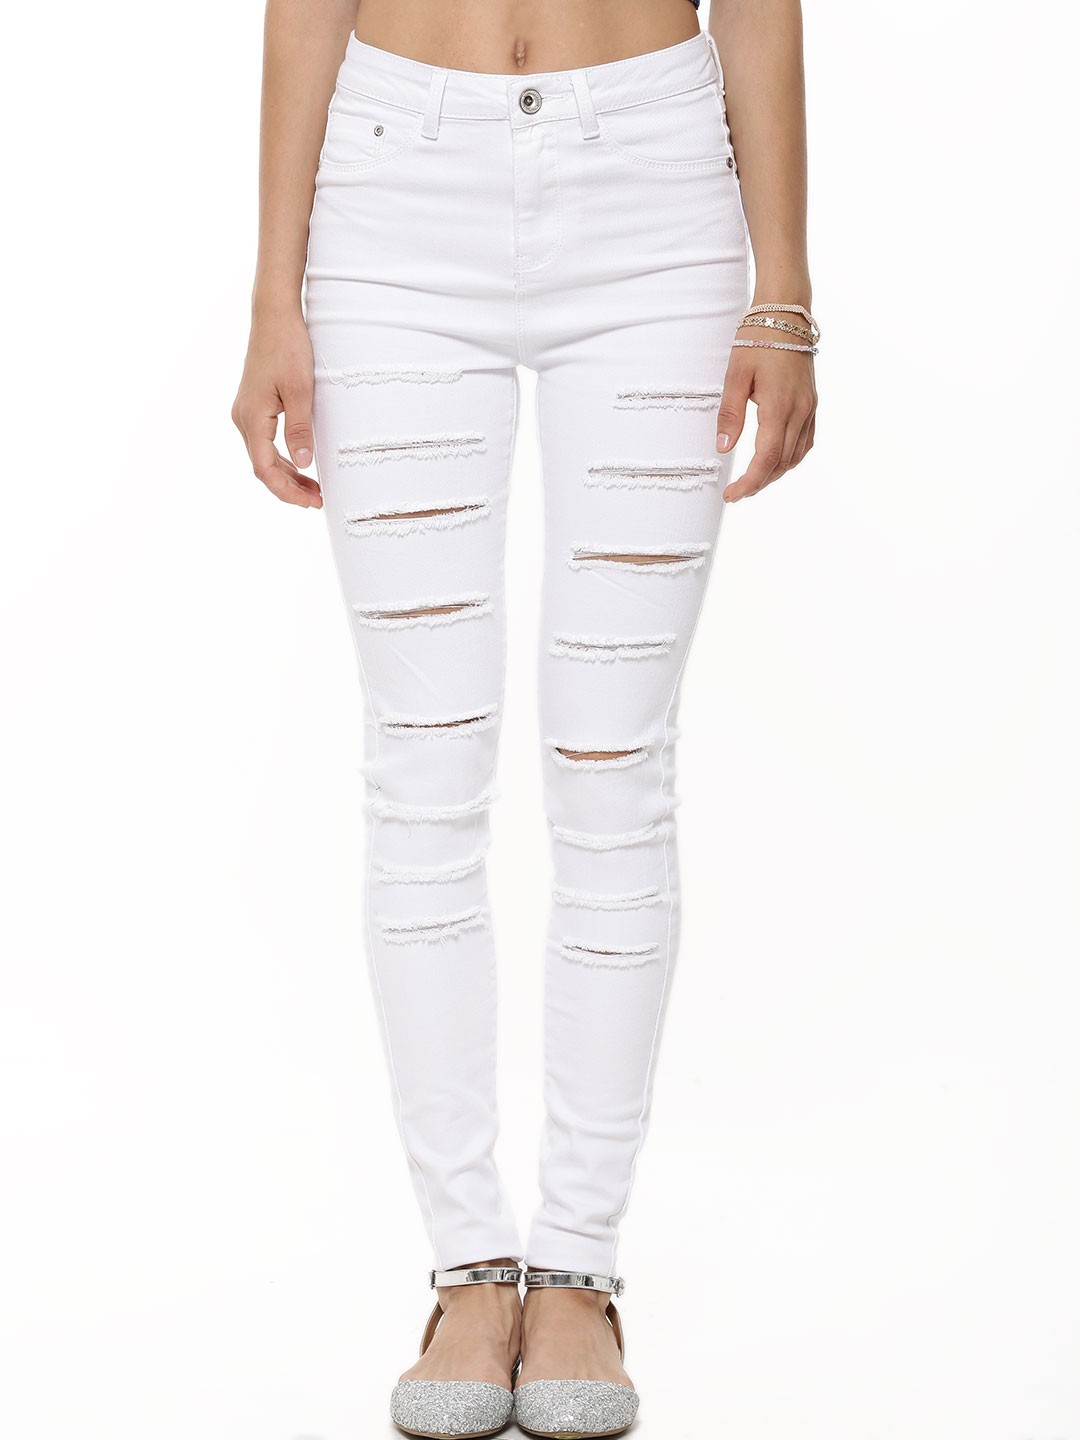 Free shipping and returns on Women's White Wash Skinny Jeans at inerloadsr5s.gq